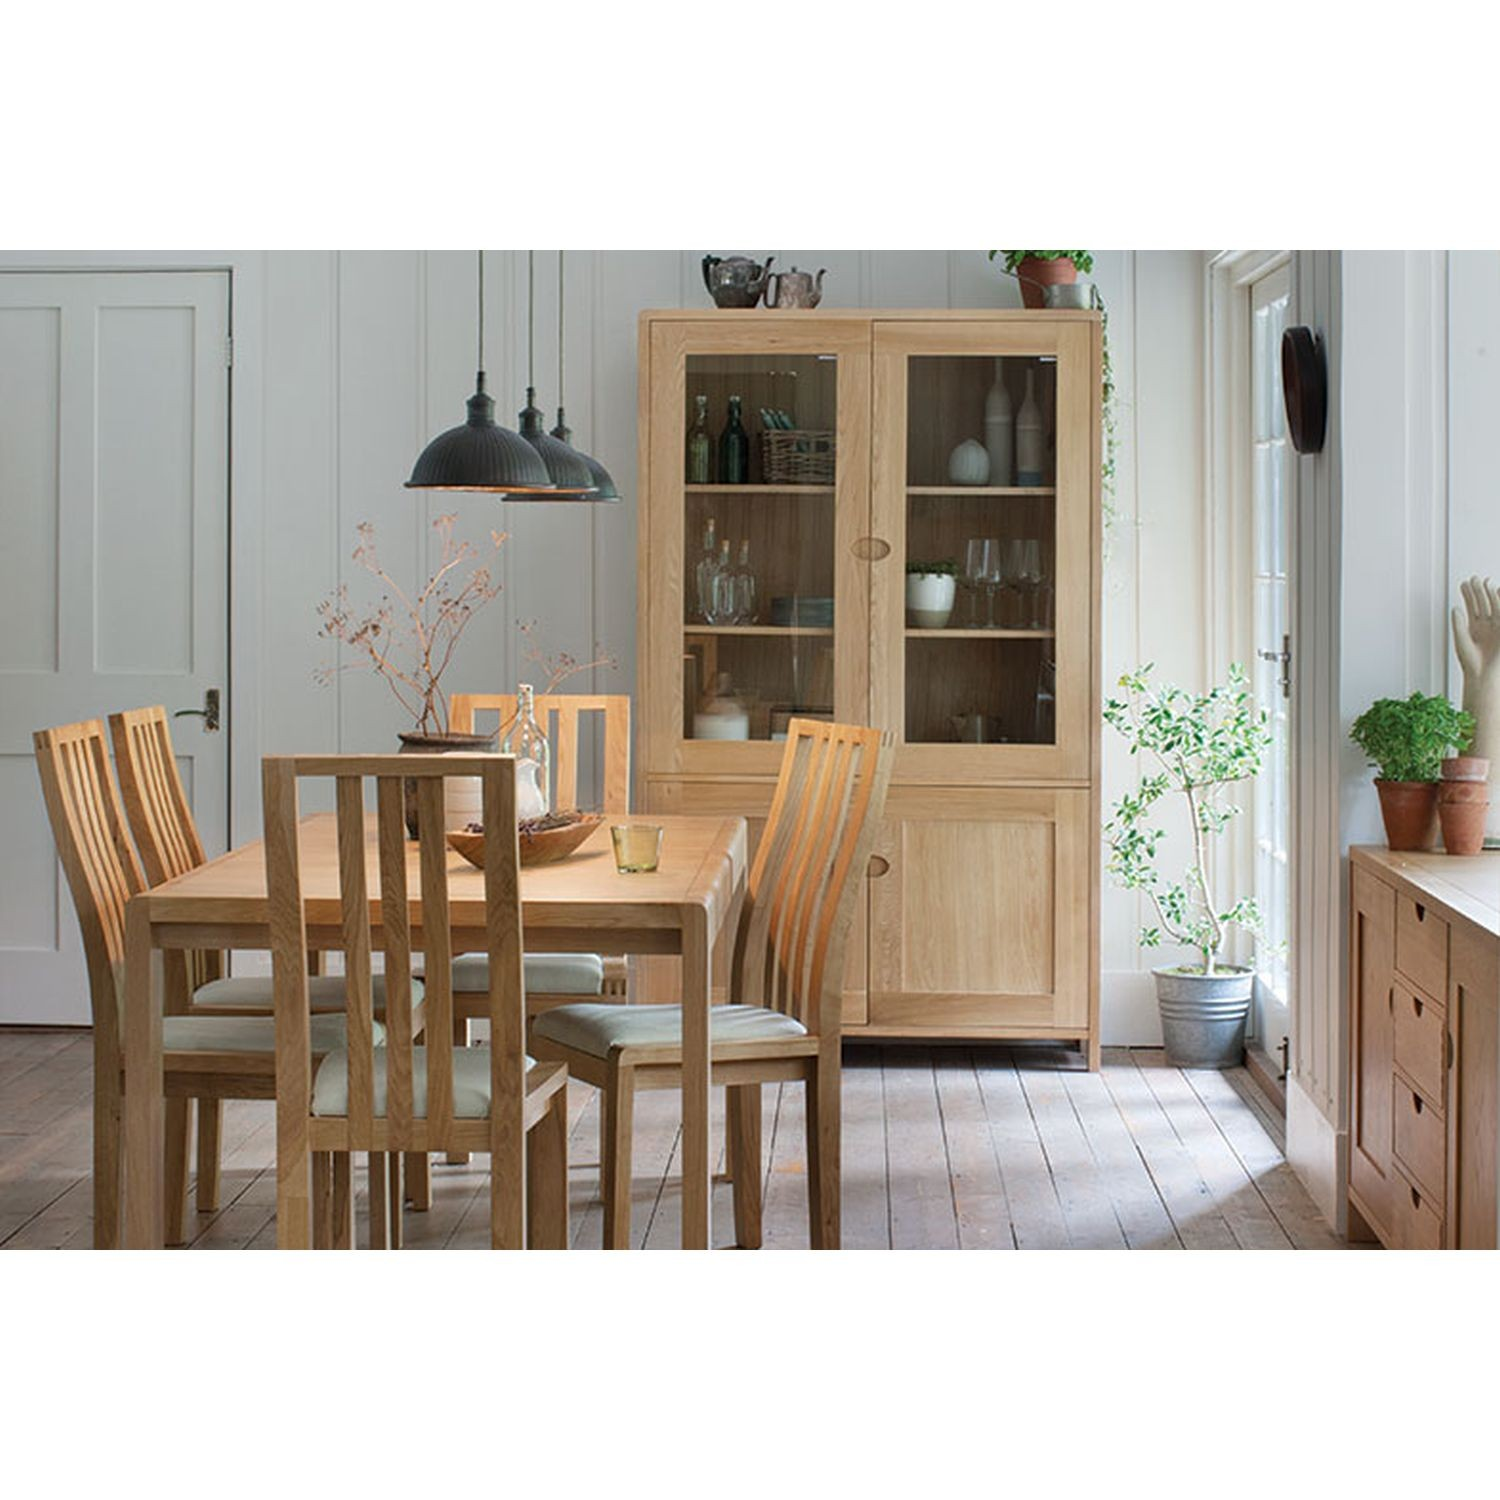 Tremendous Ercol Web Bosco Table Four Chars And Two Carvers Download Free Architecture Designs Salvmadebymaigaardcom